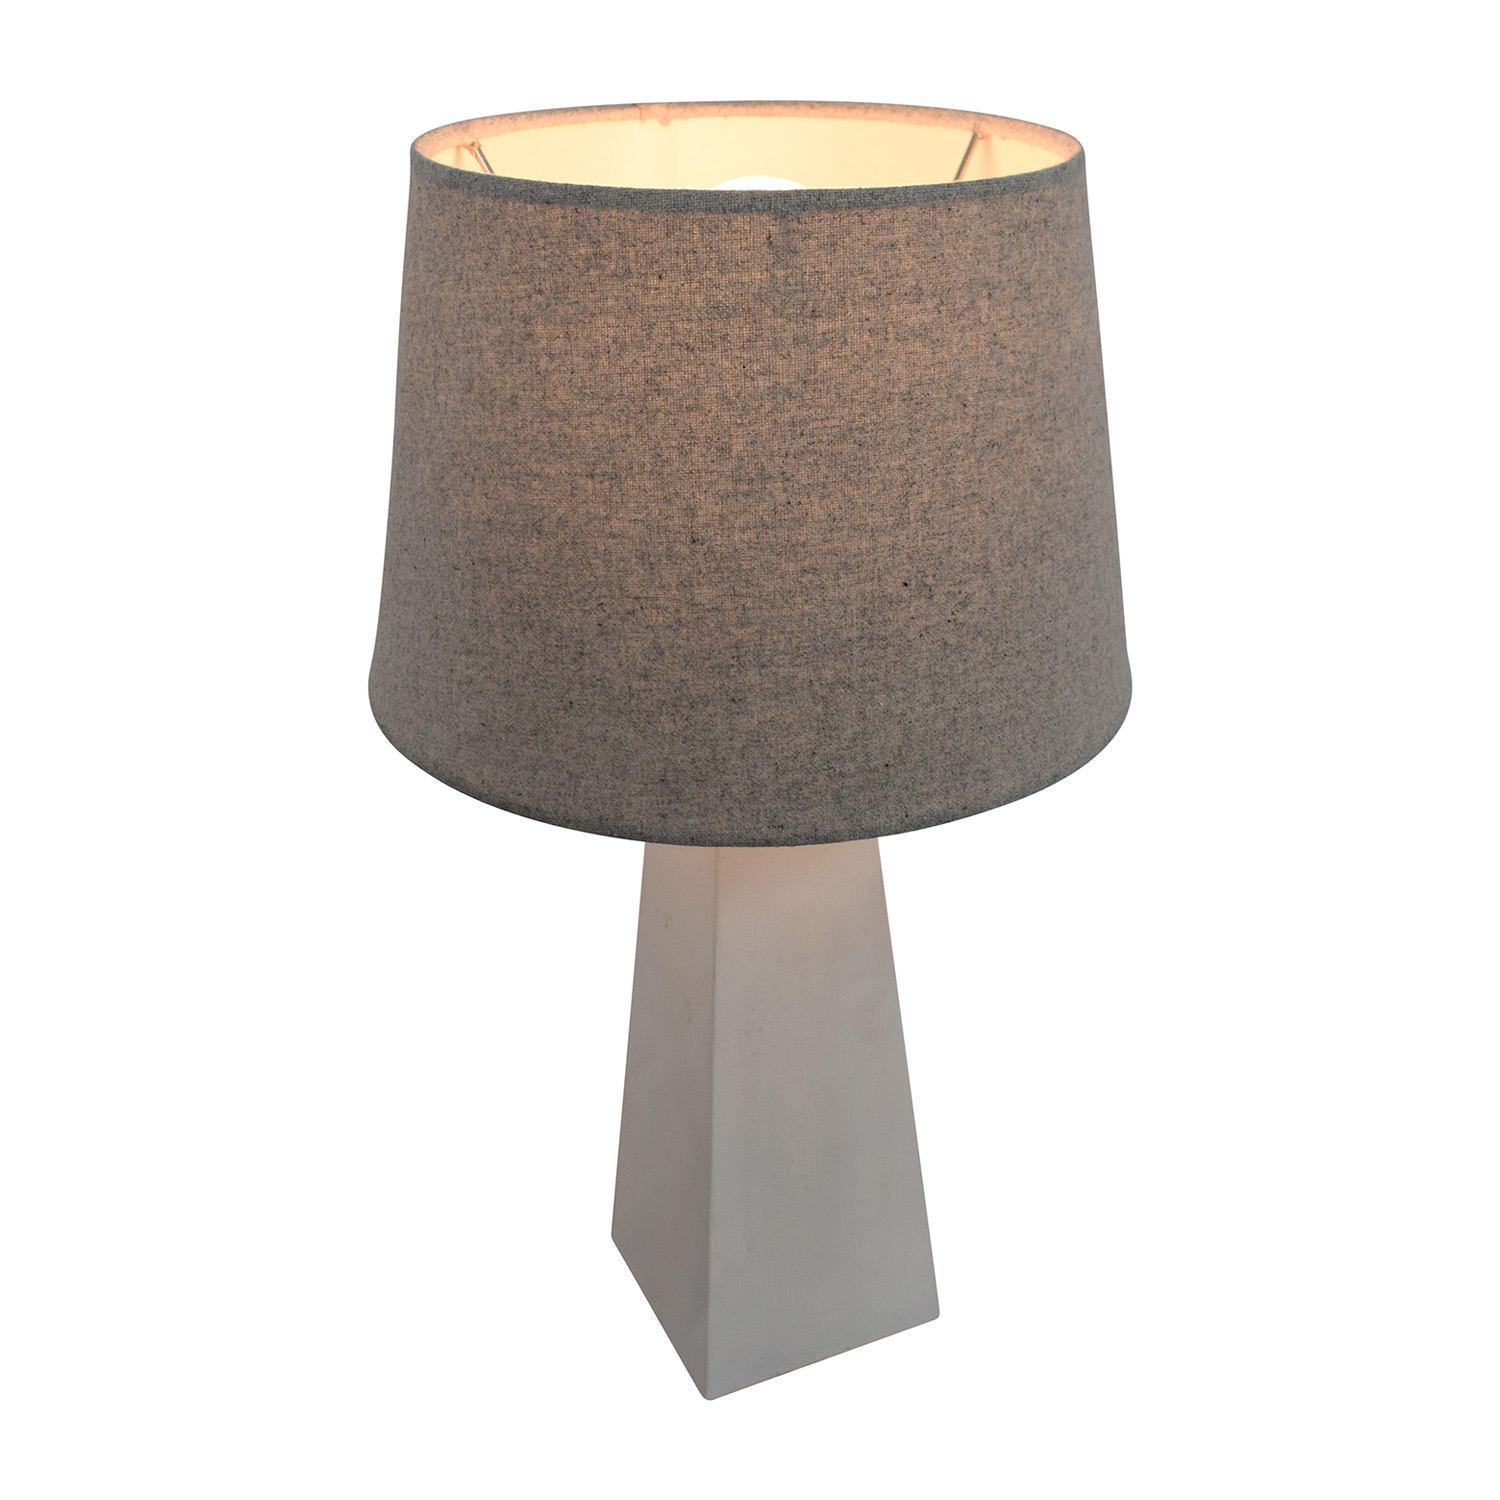 Target White Base with Silver Shade Lamp / Decor